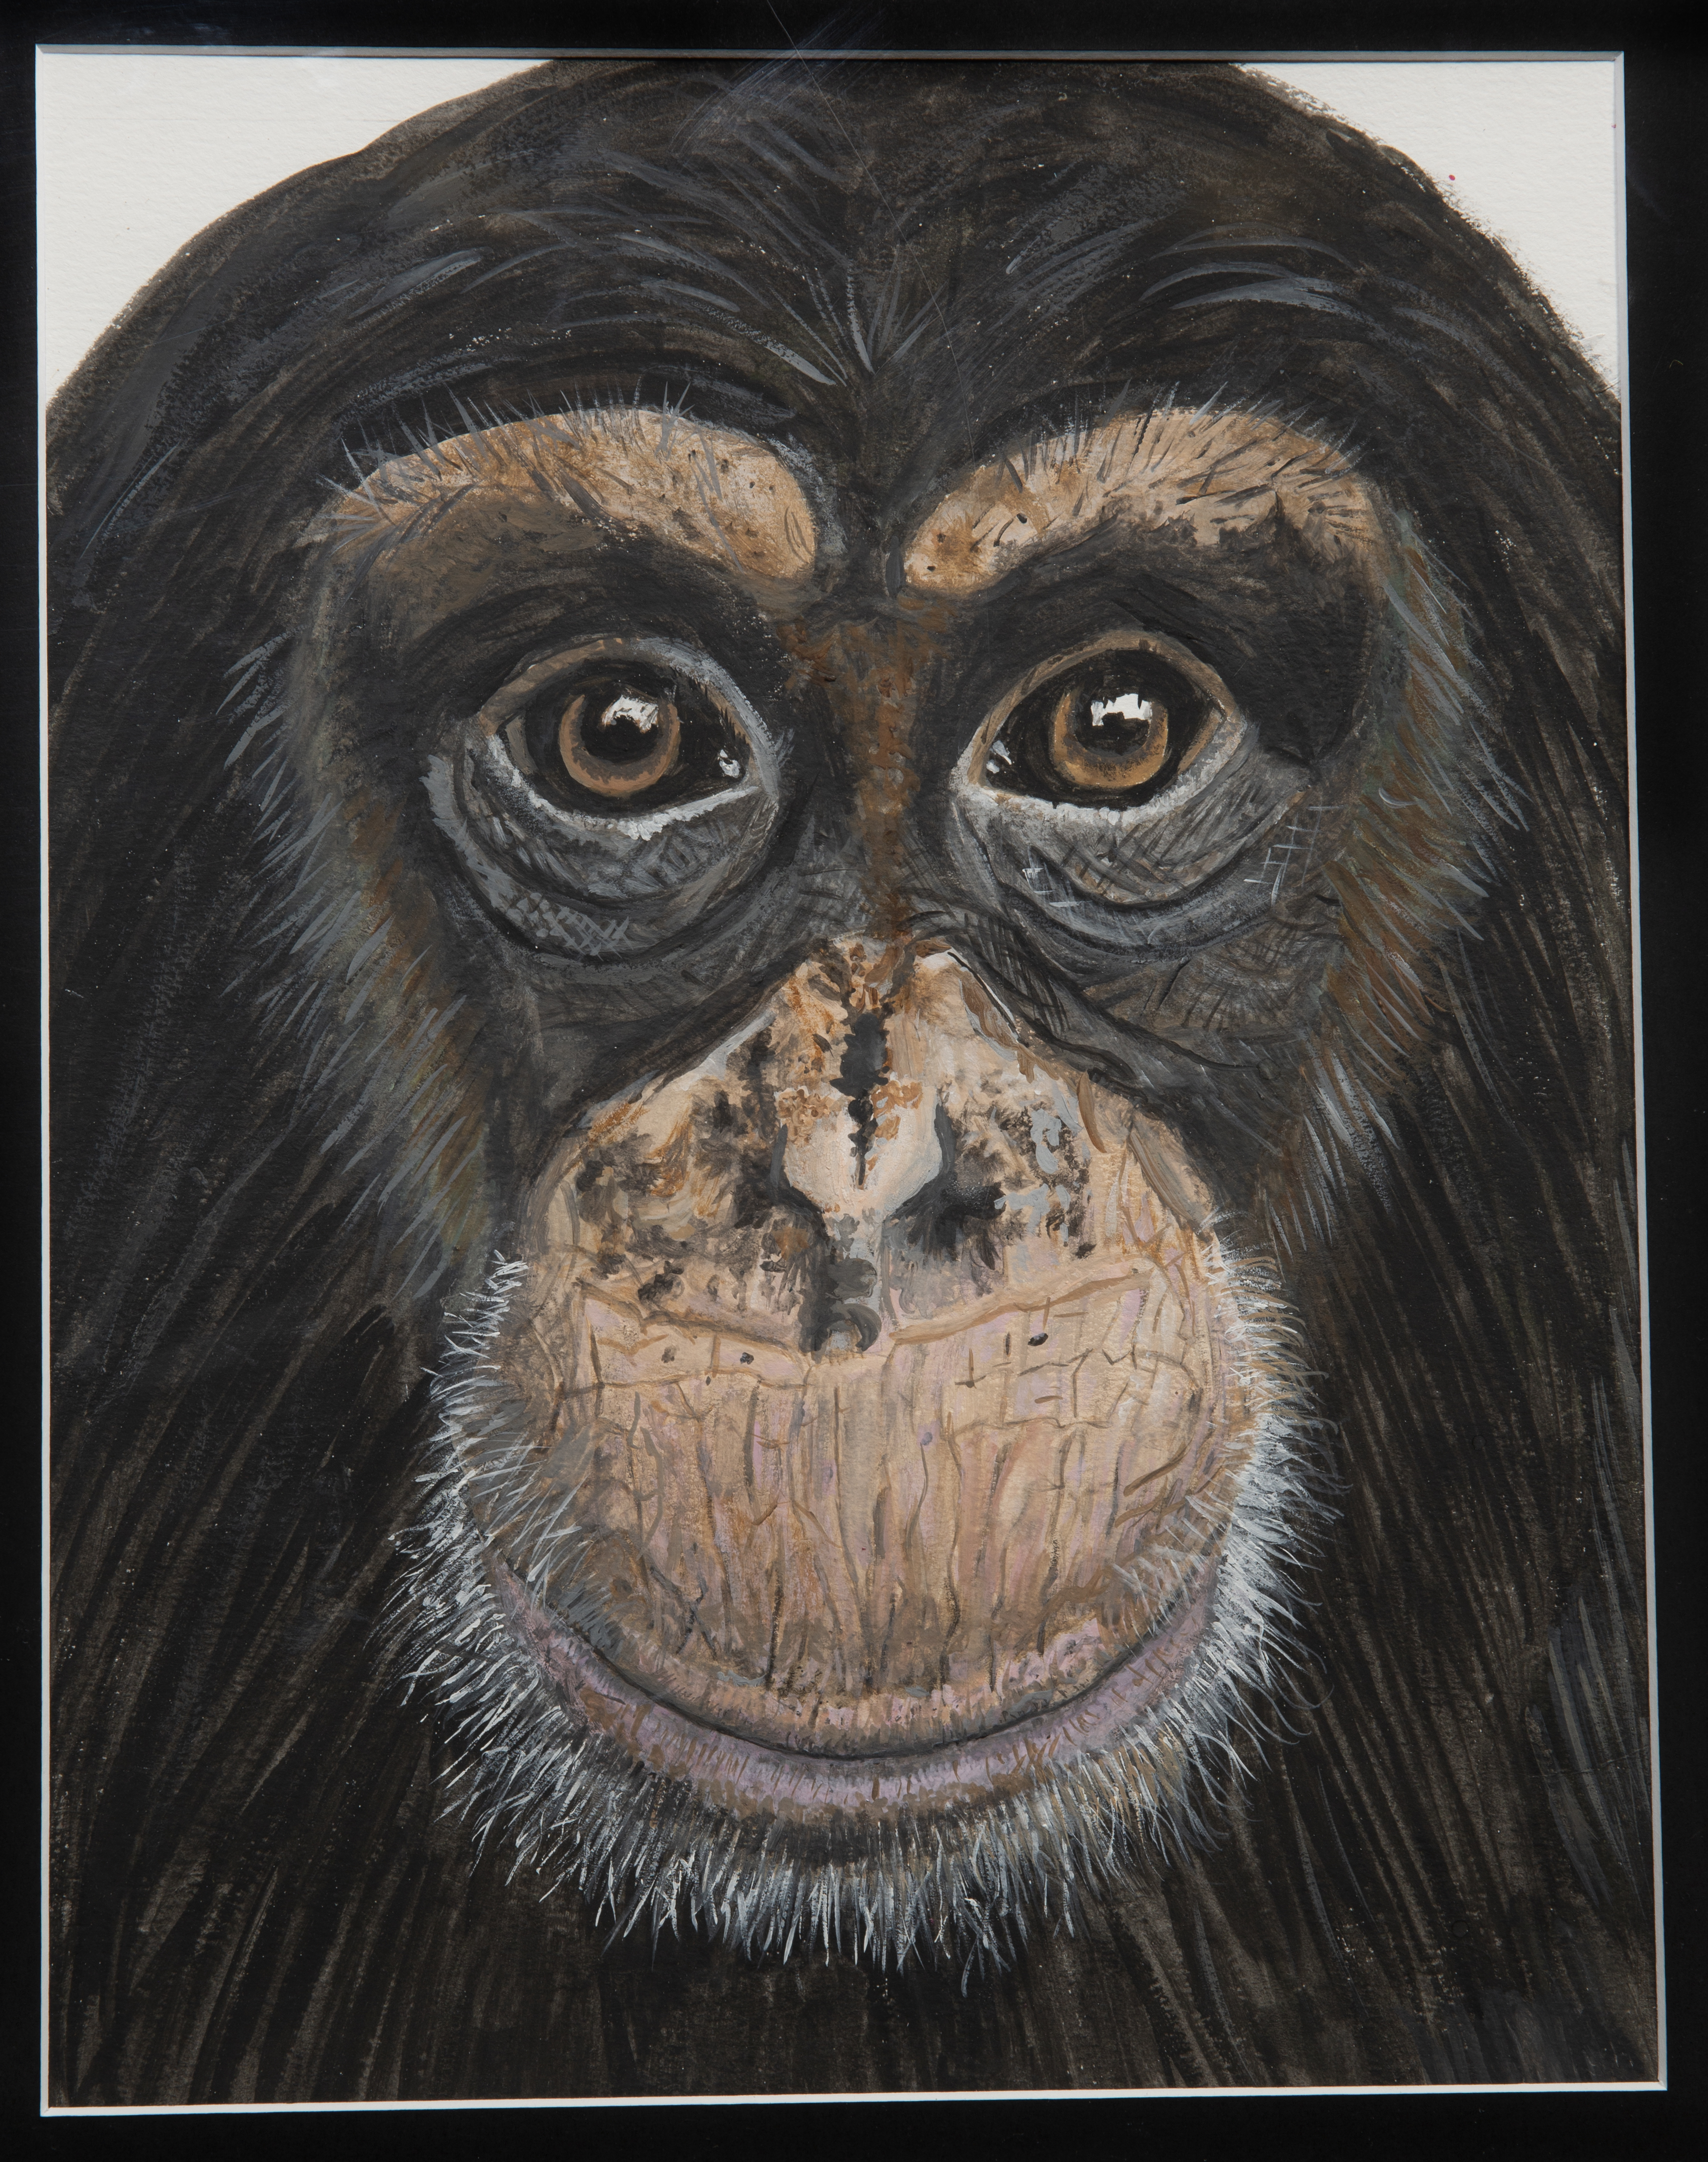 Painting - Louie - painting of a chimpanzee face with a soft expression